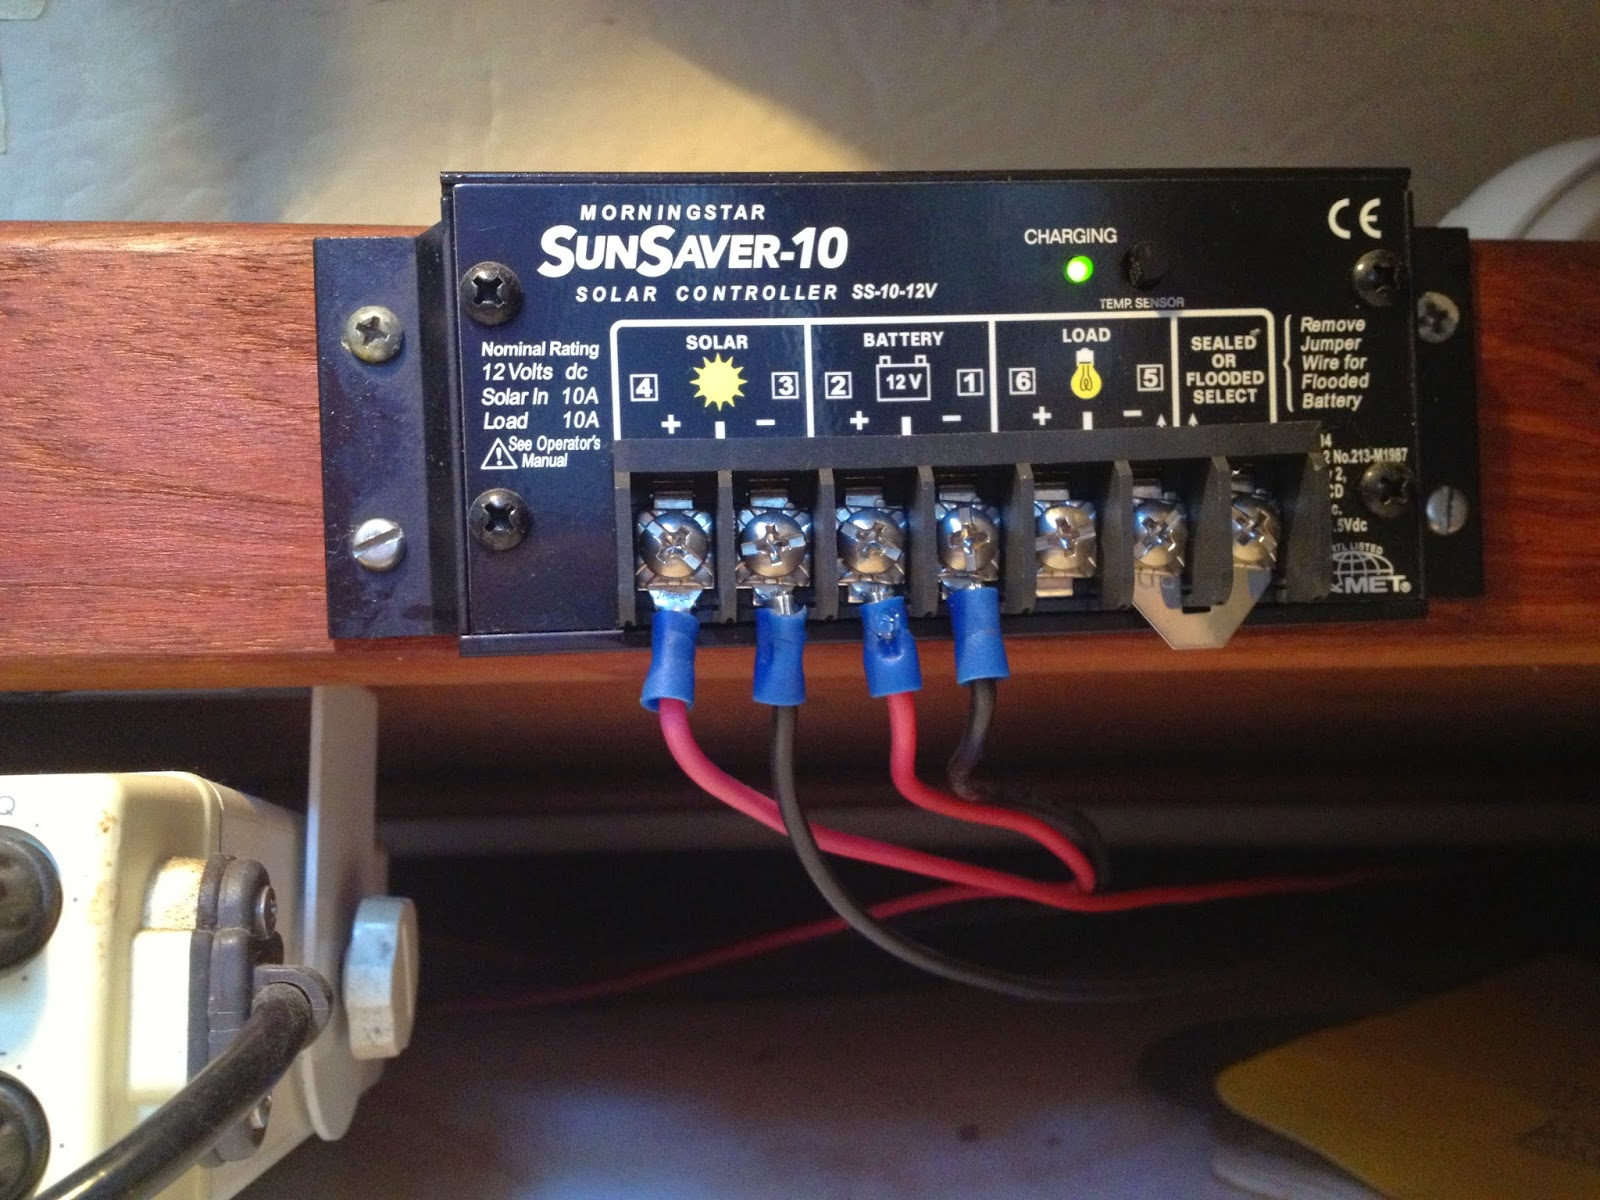 diy solar panel system wiring diagram pv array captain curran 39s sailing blog panels for boats an